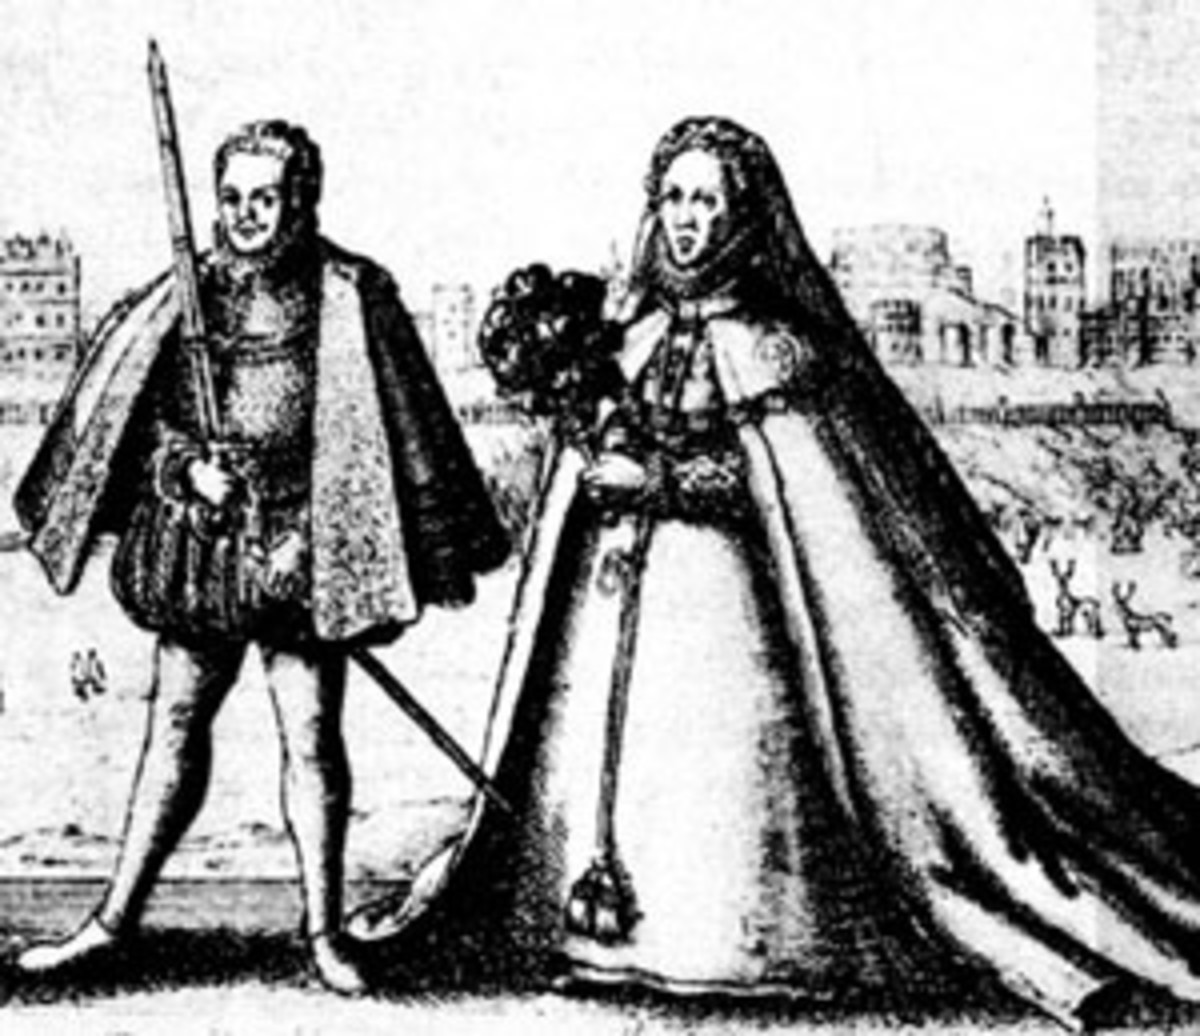 Edward De Vere had many reasons that he would not have wanted his name mentioned on the plays.